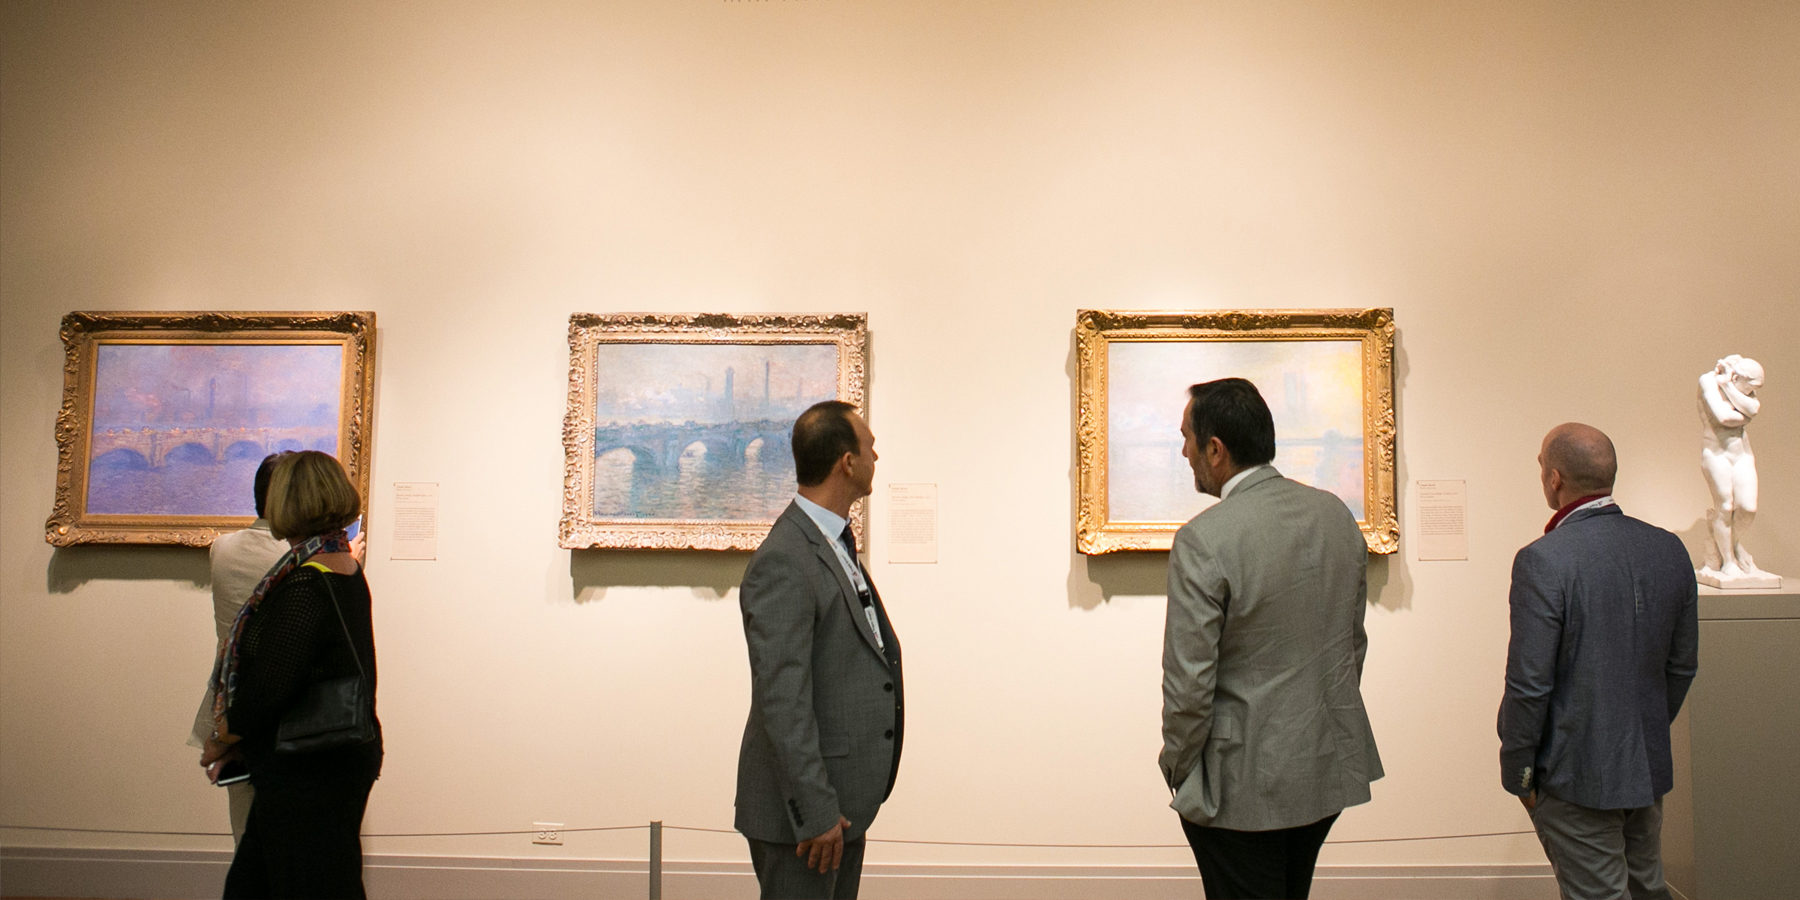 Looking at Monet paintings at Art Institute of Chicago